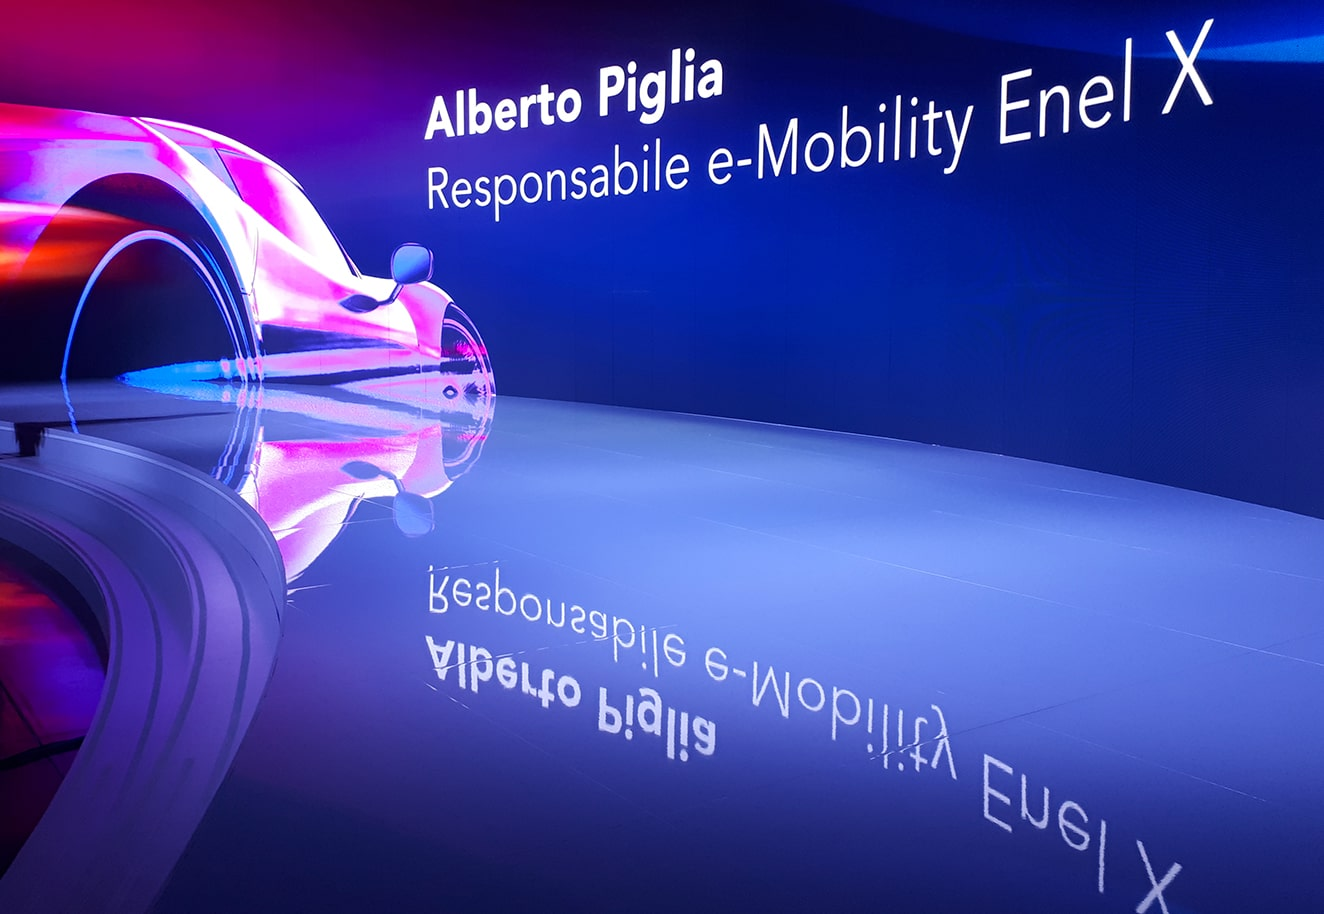 Motion graphics video production and contents for Enel X e-Mobility 2018 - Luther Dsgn agency